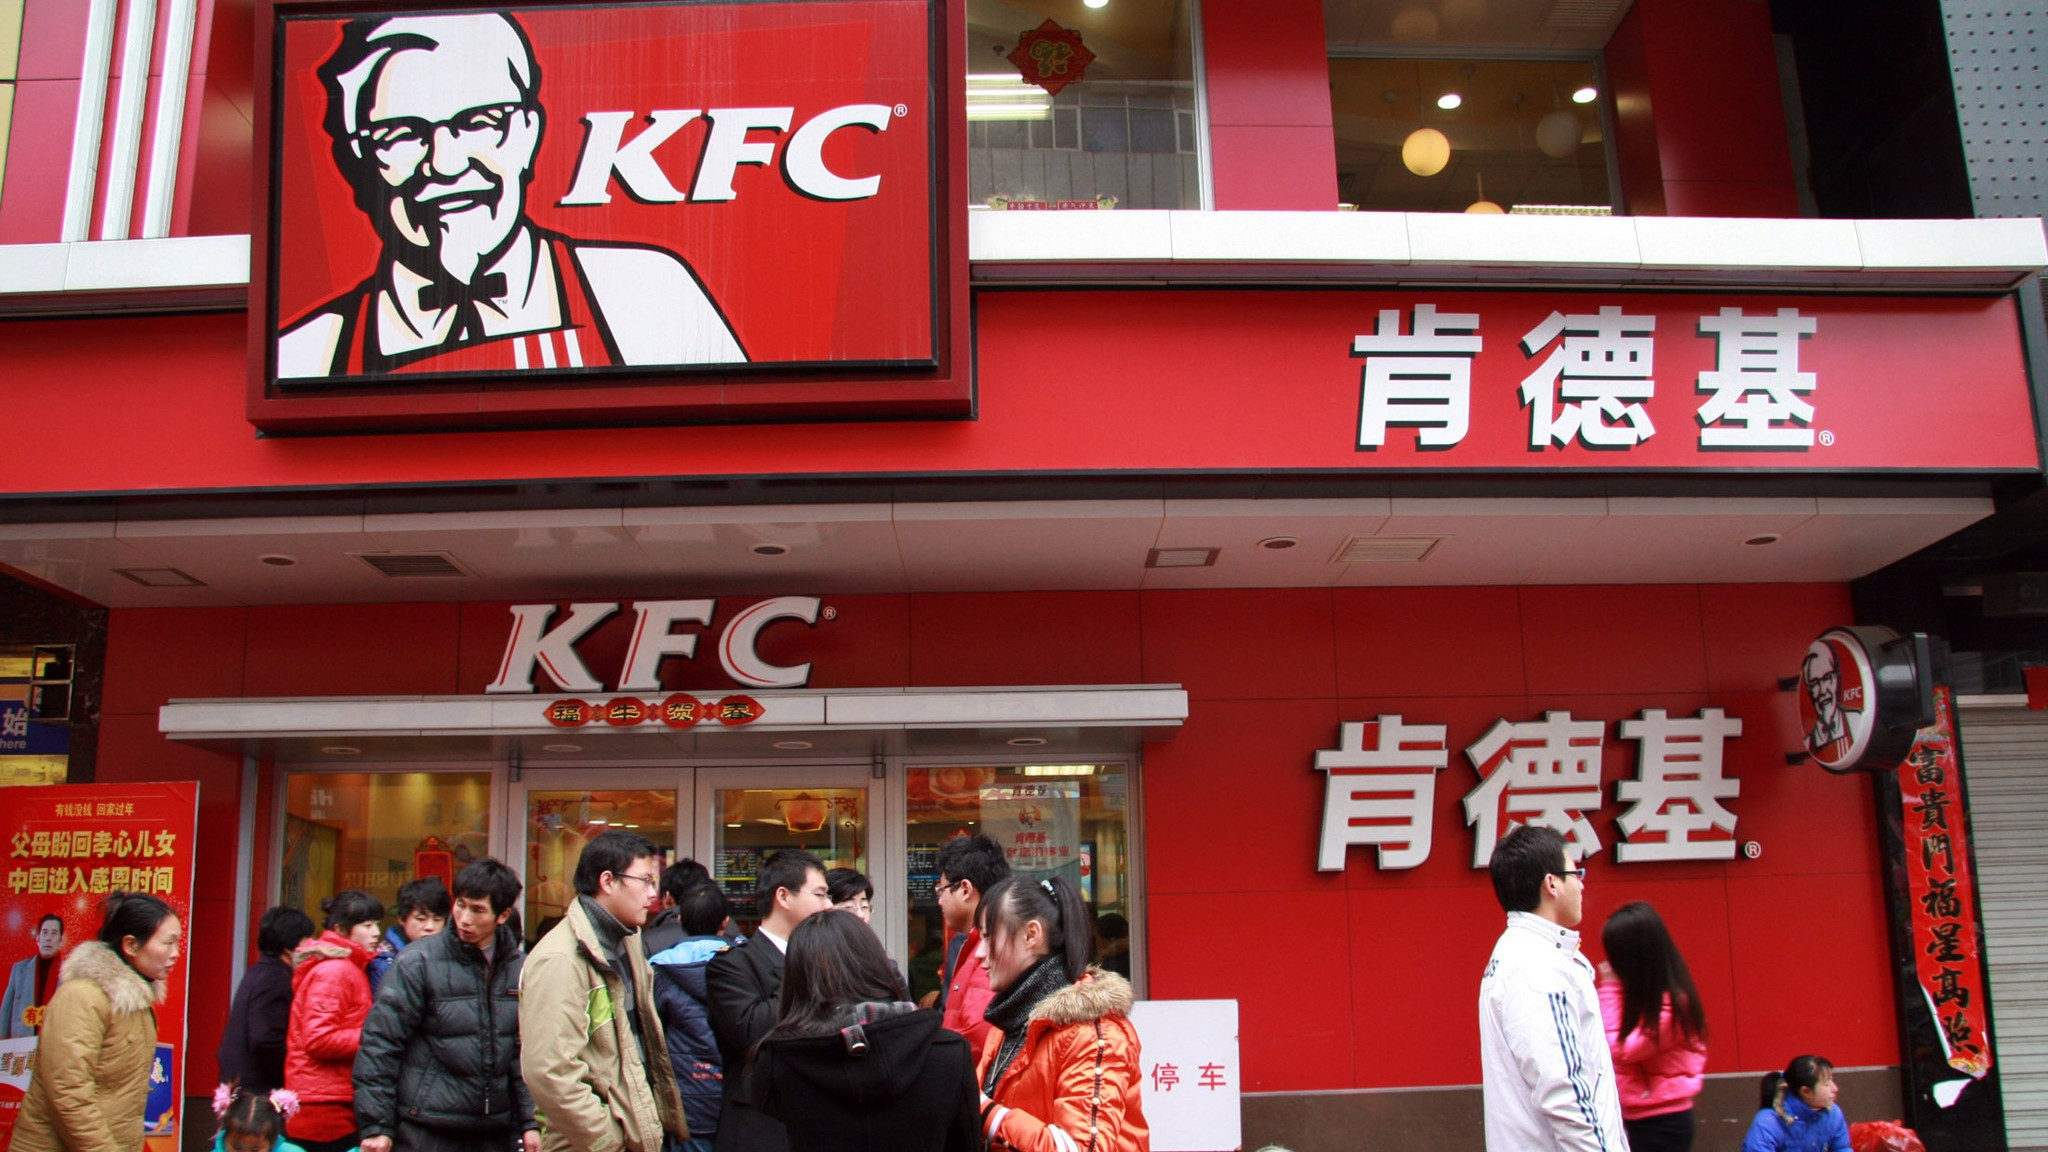 strategic management mcdonalds in china Food safety comes near the top of any league table of public concerns in china, so mcdonald's was hit hard pku management financial times and its.